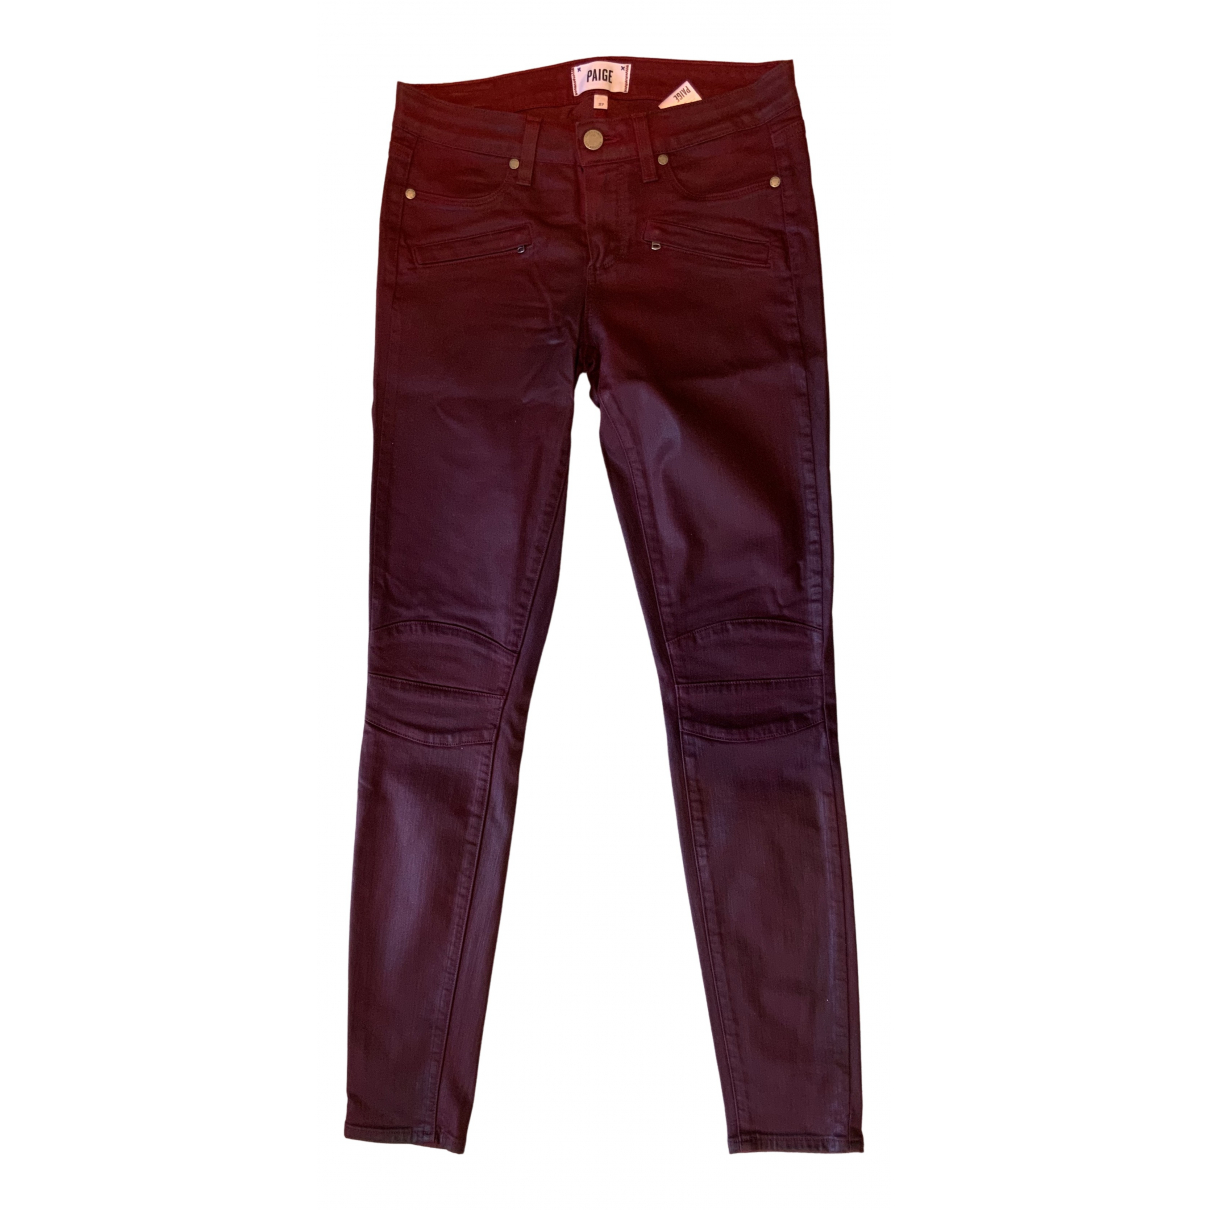 Paige Jeans N Burgundy Cotton - elasthane Jeans for Women 27 US